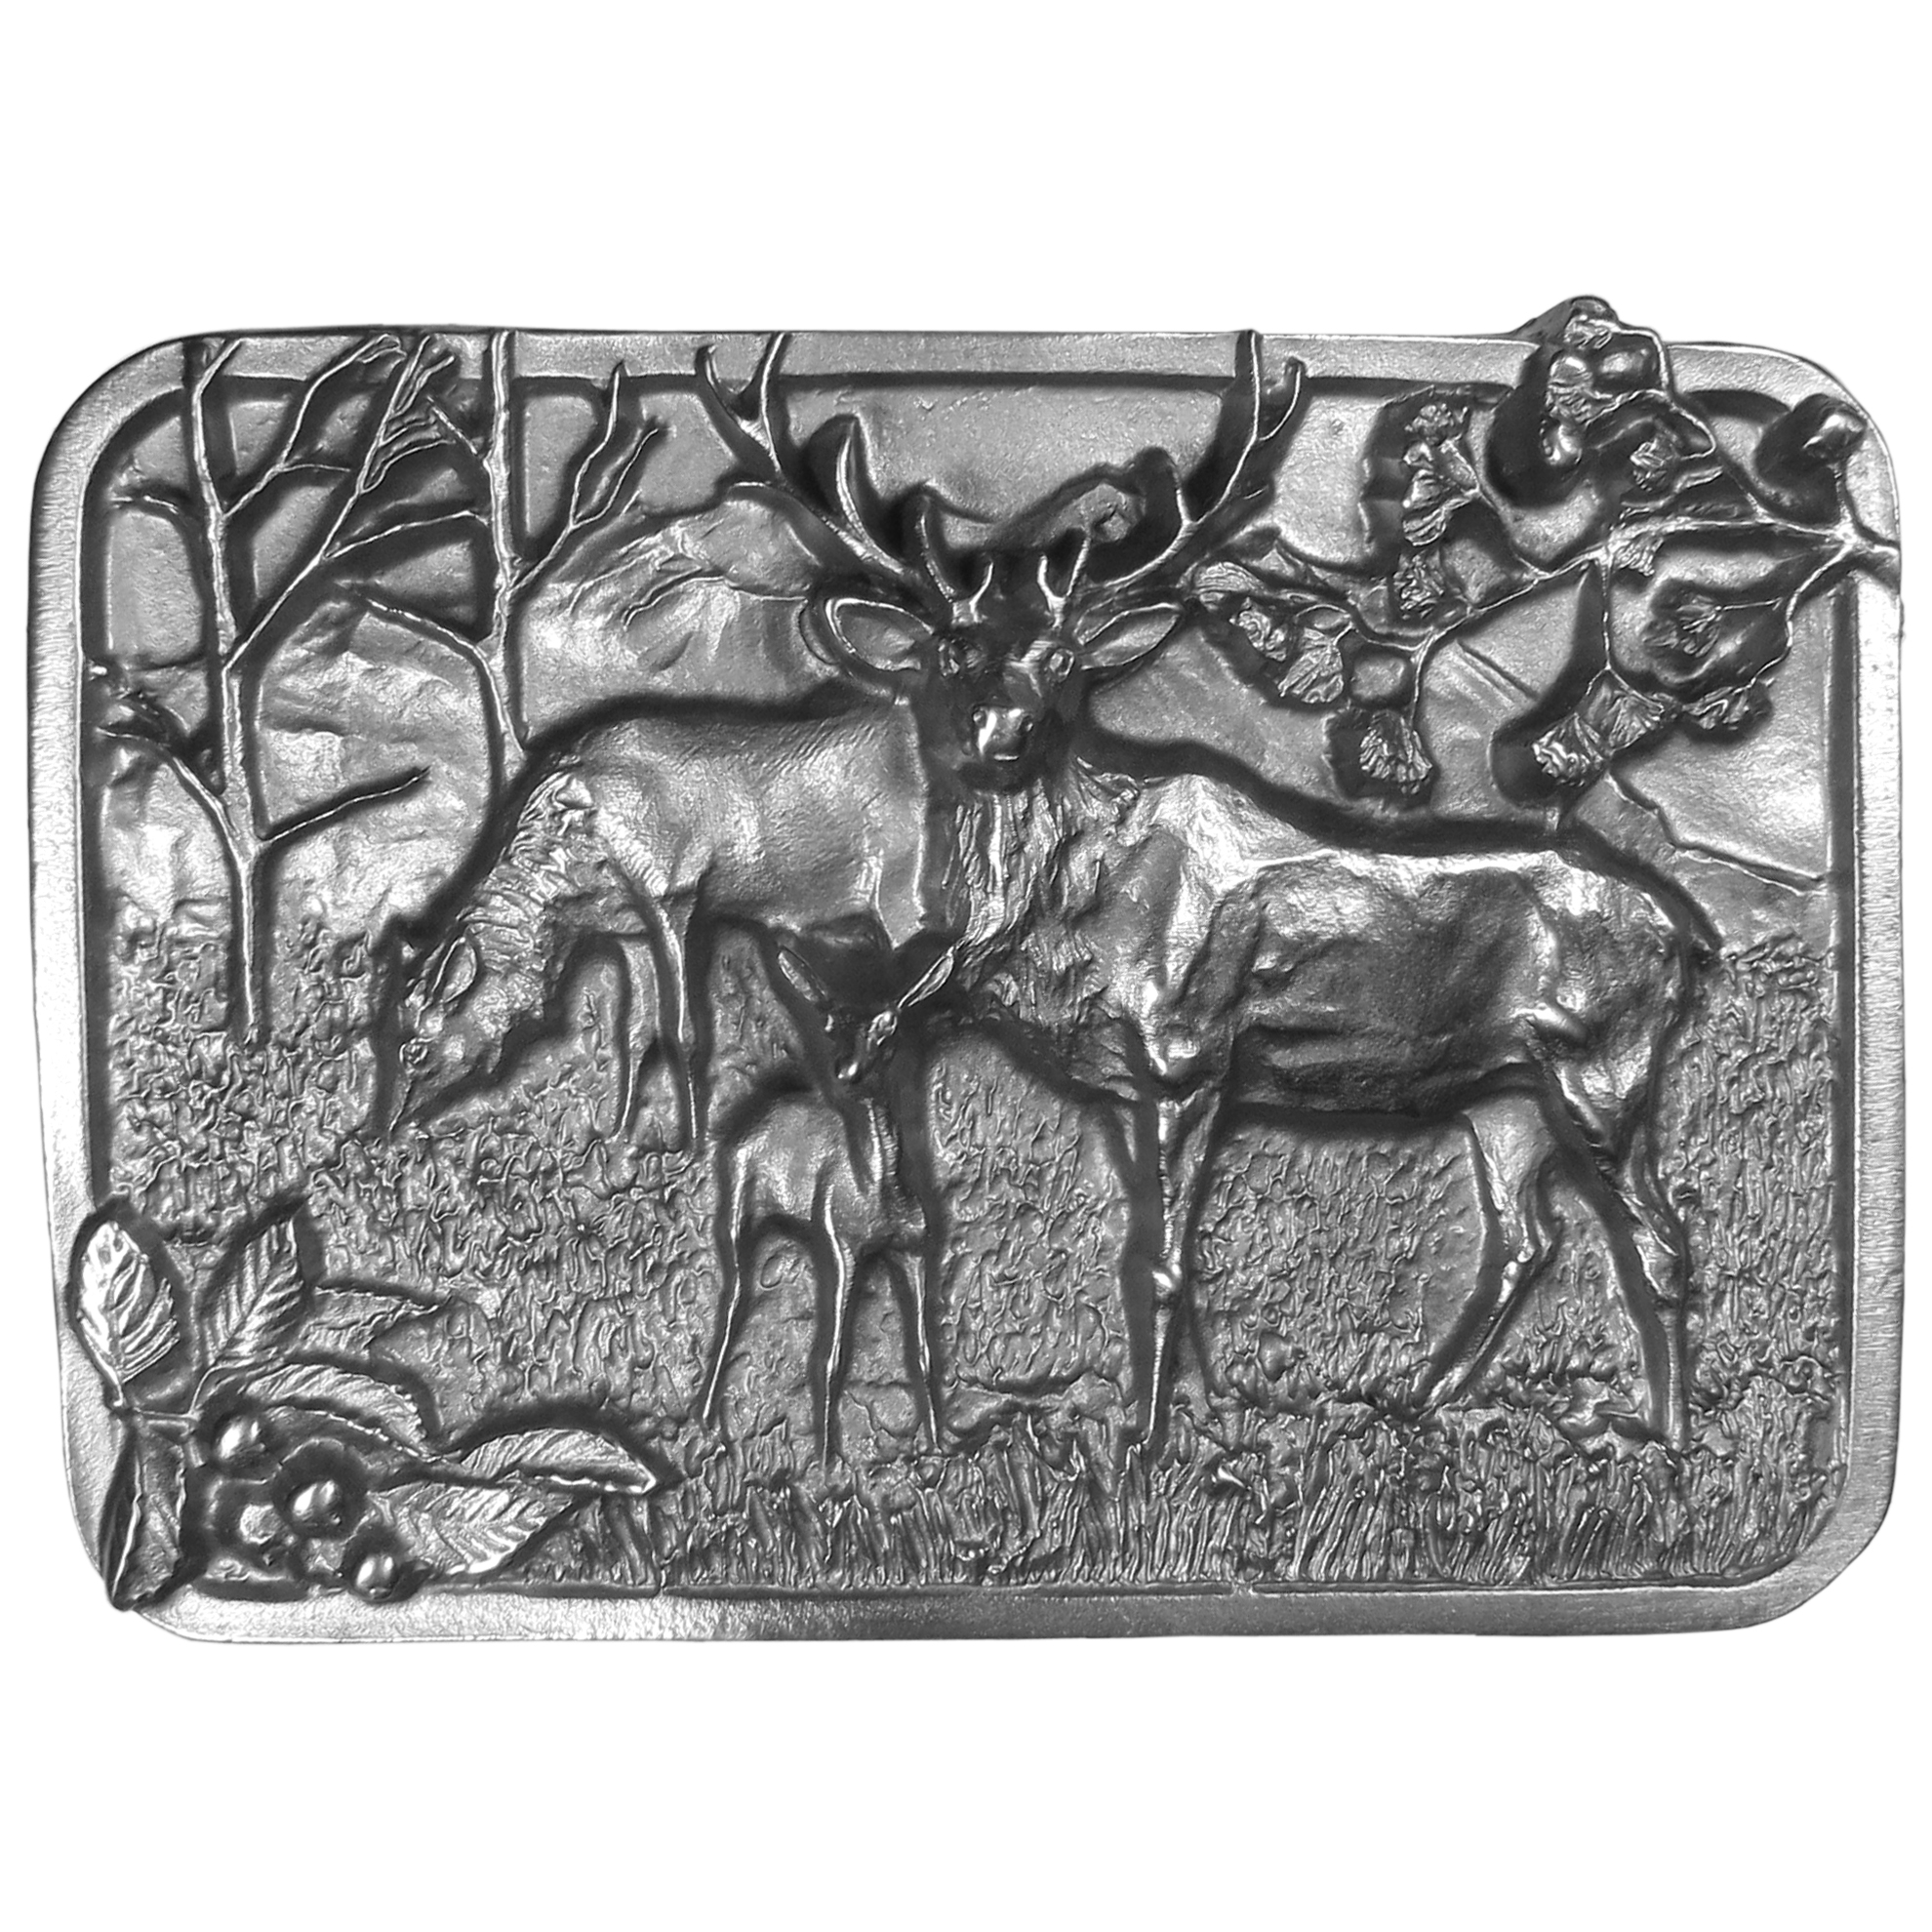 "Elk Antiqued Belt Buckle - ""A beautifully designed image of 3 elk, a bull, a cow and a calf, are the highlight of this antiqued buckle.  Other images include the mountains, field, trees, flowers and berries.  This exquisite carved buckle is made of fully cast metal with a standard bale that fits up to 2"""" belts.  Siskiyou's unique buckle designs often become collector's items and are unequaled in craftsmanship.  Made in the USA."""